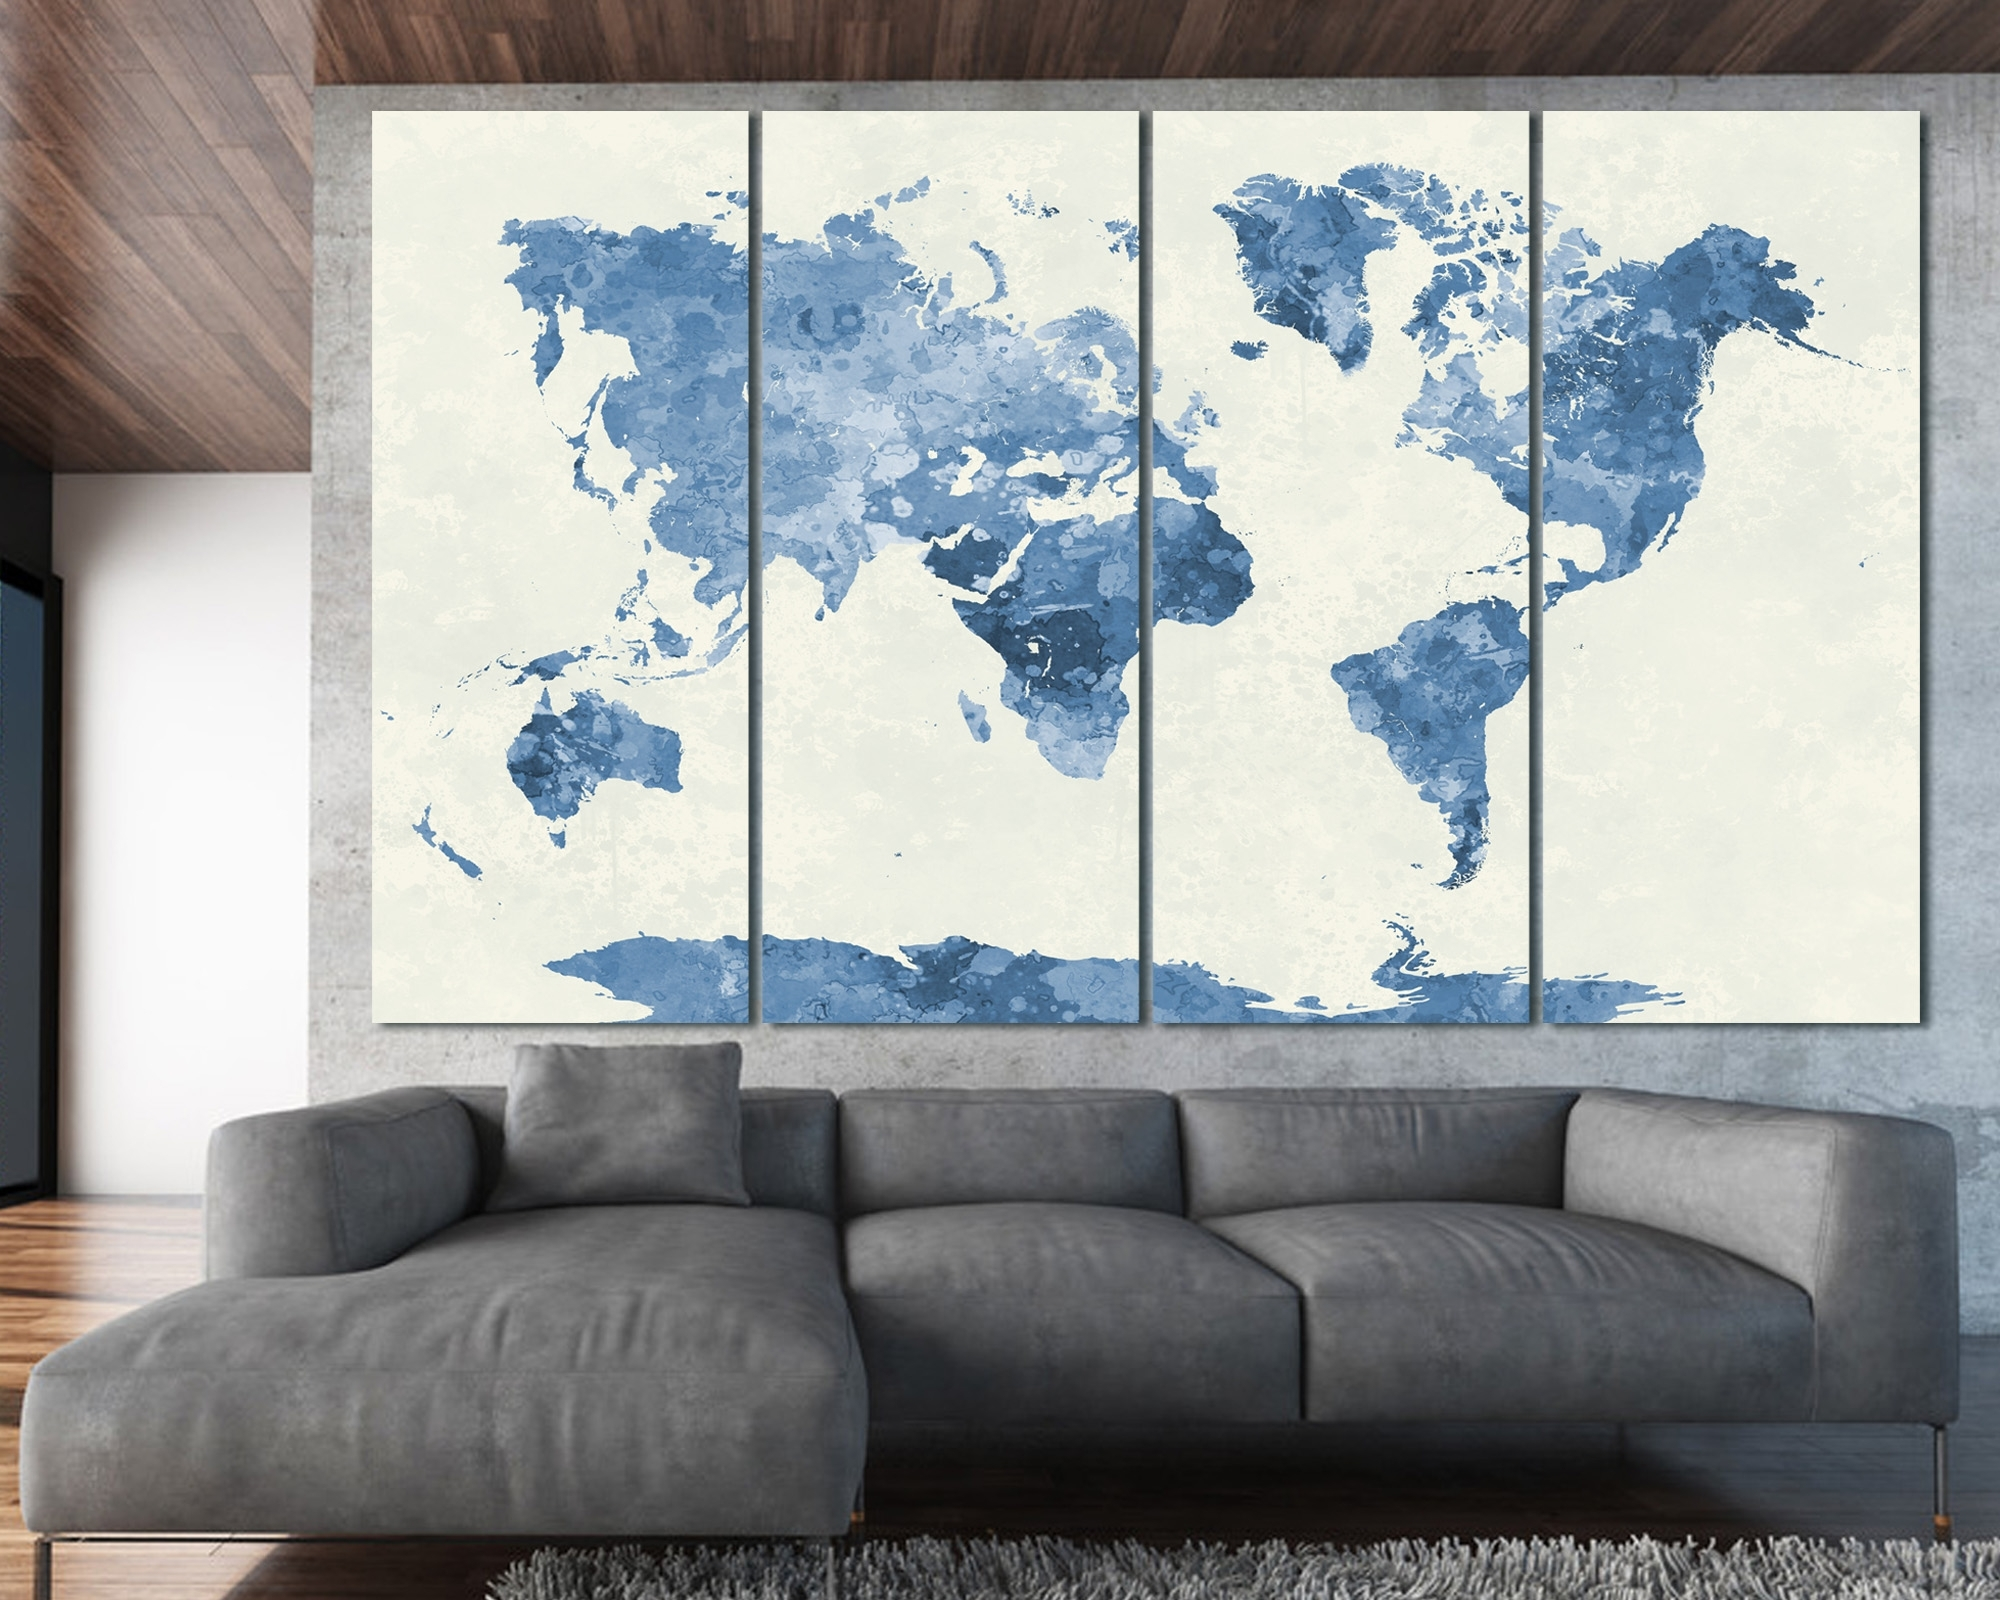 Most Recent Navy Blue Watercolor World Map Print At Texelprintart With Regard To Navy Blue Wall Art (View 7 of 15)